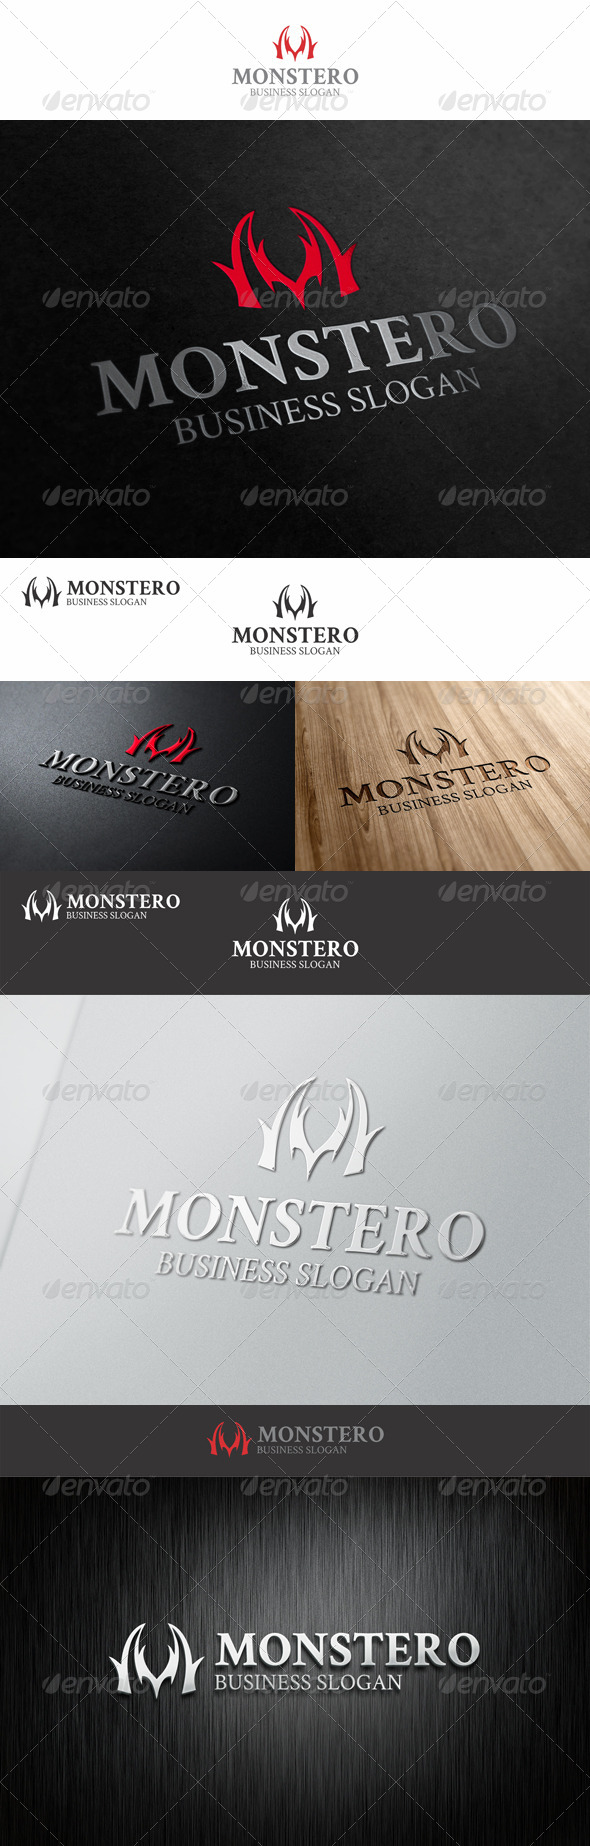 Mystery M Logo - Monstero - Letters Logo Templates